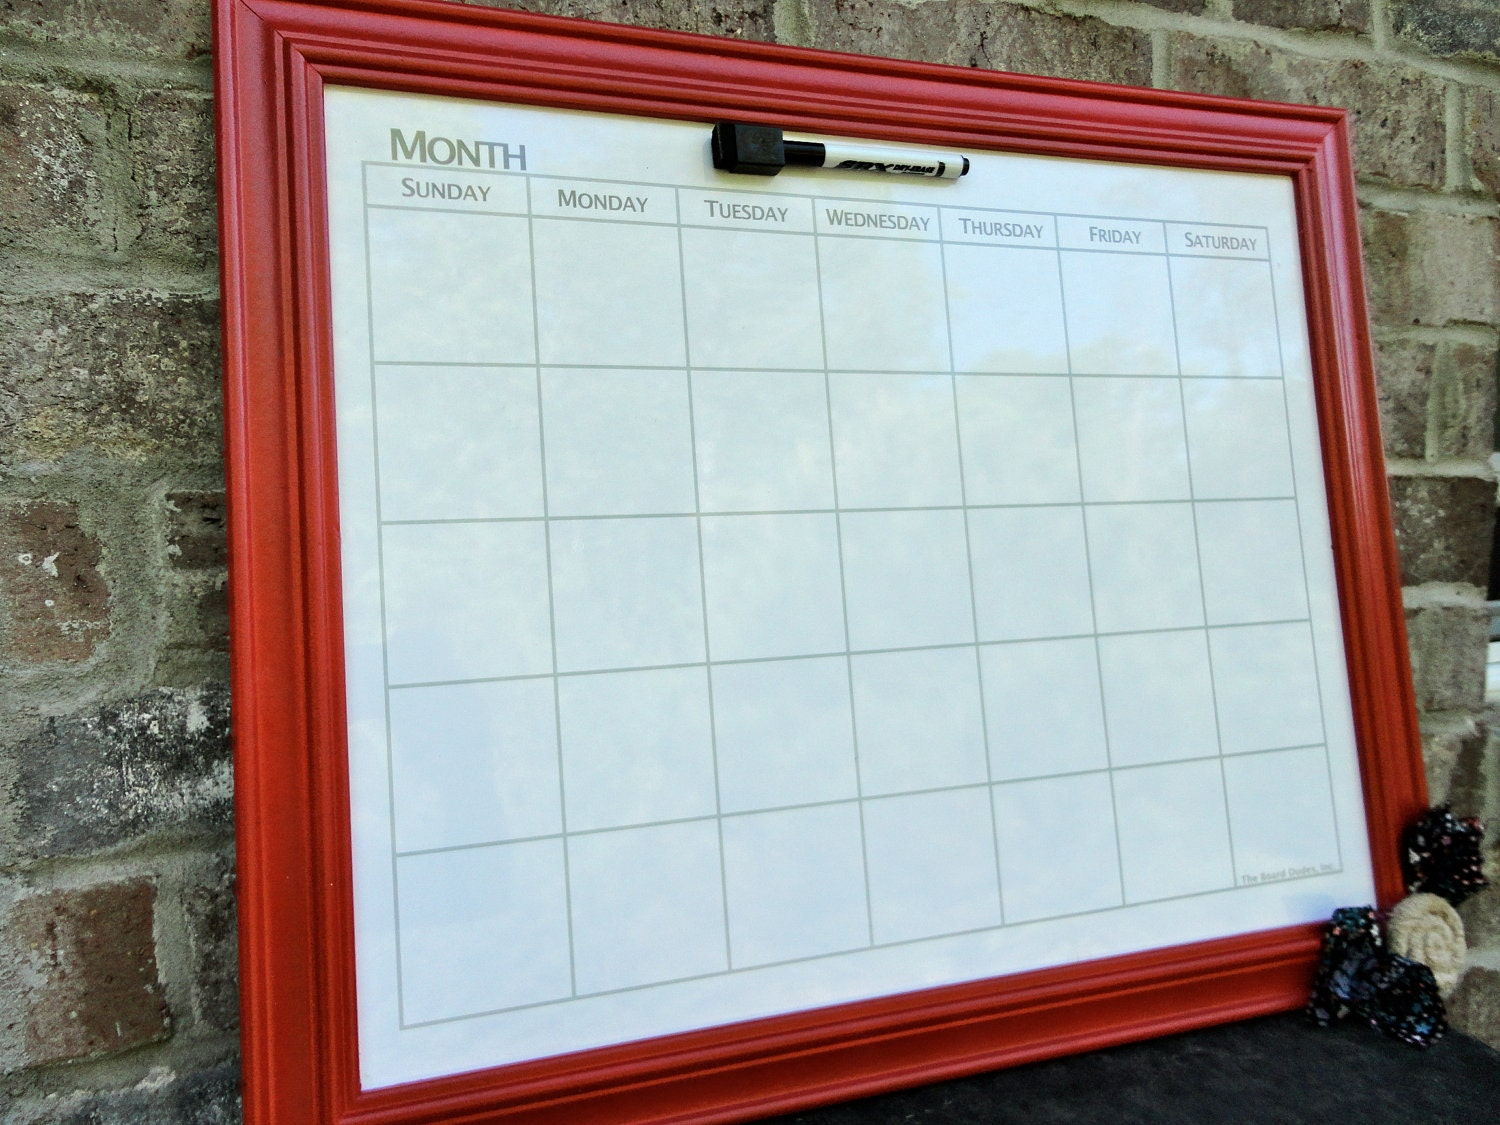 Framed Magnetic Whiteboard Calendar Orange By Whogivesacraft28